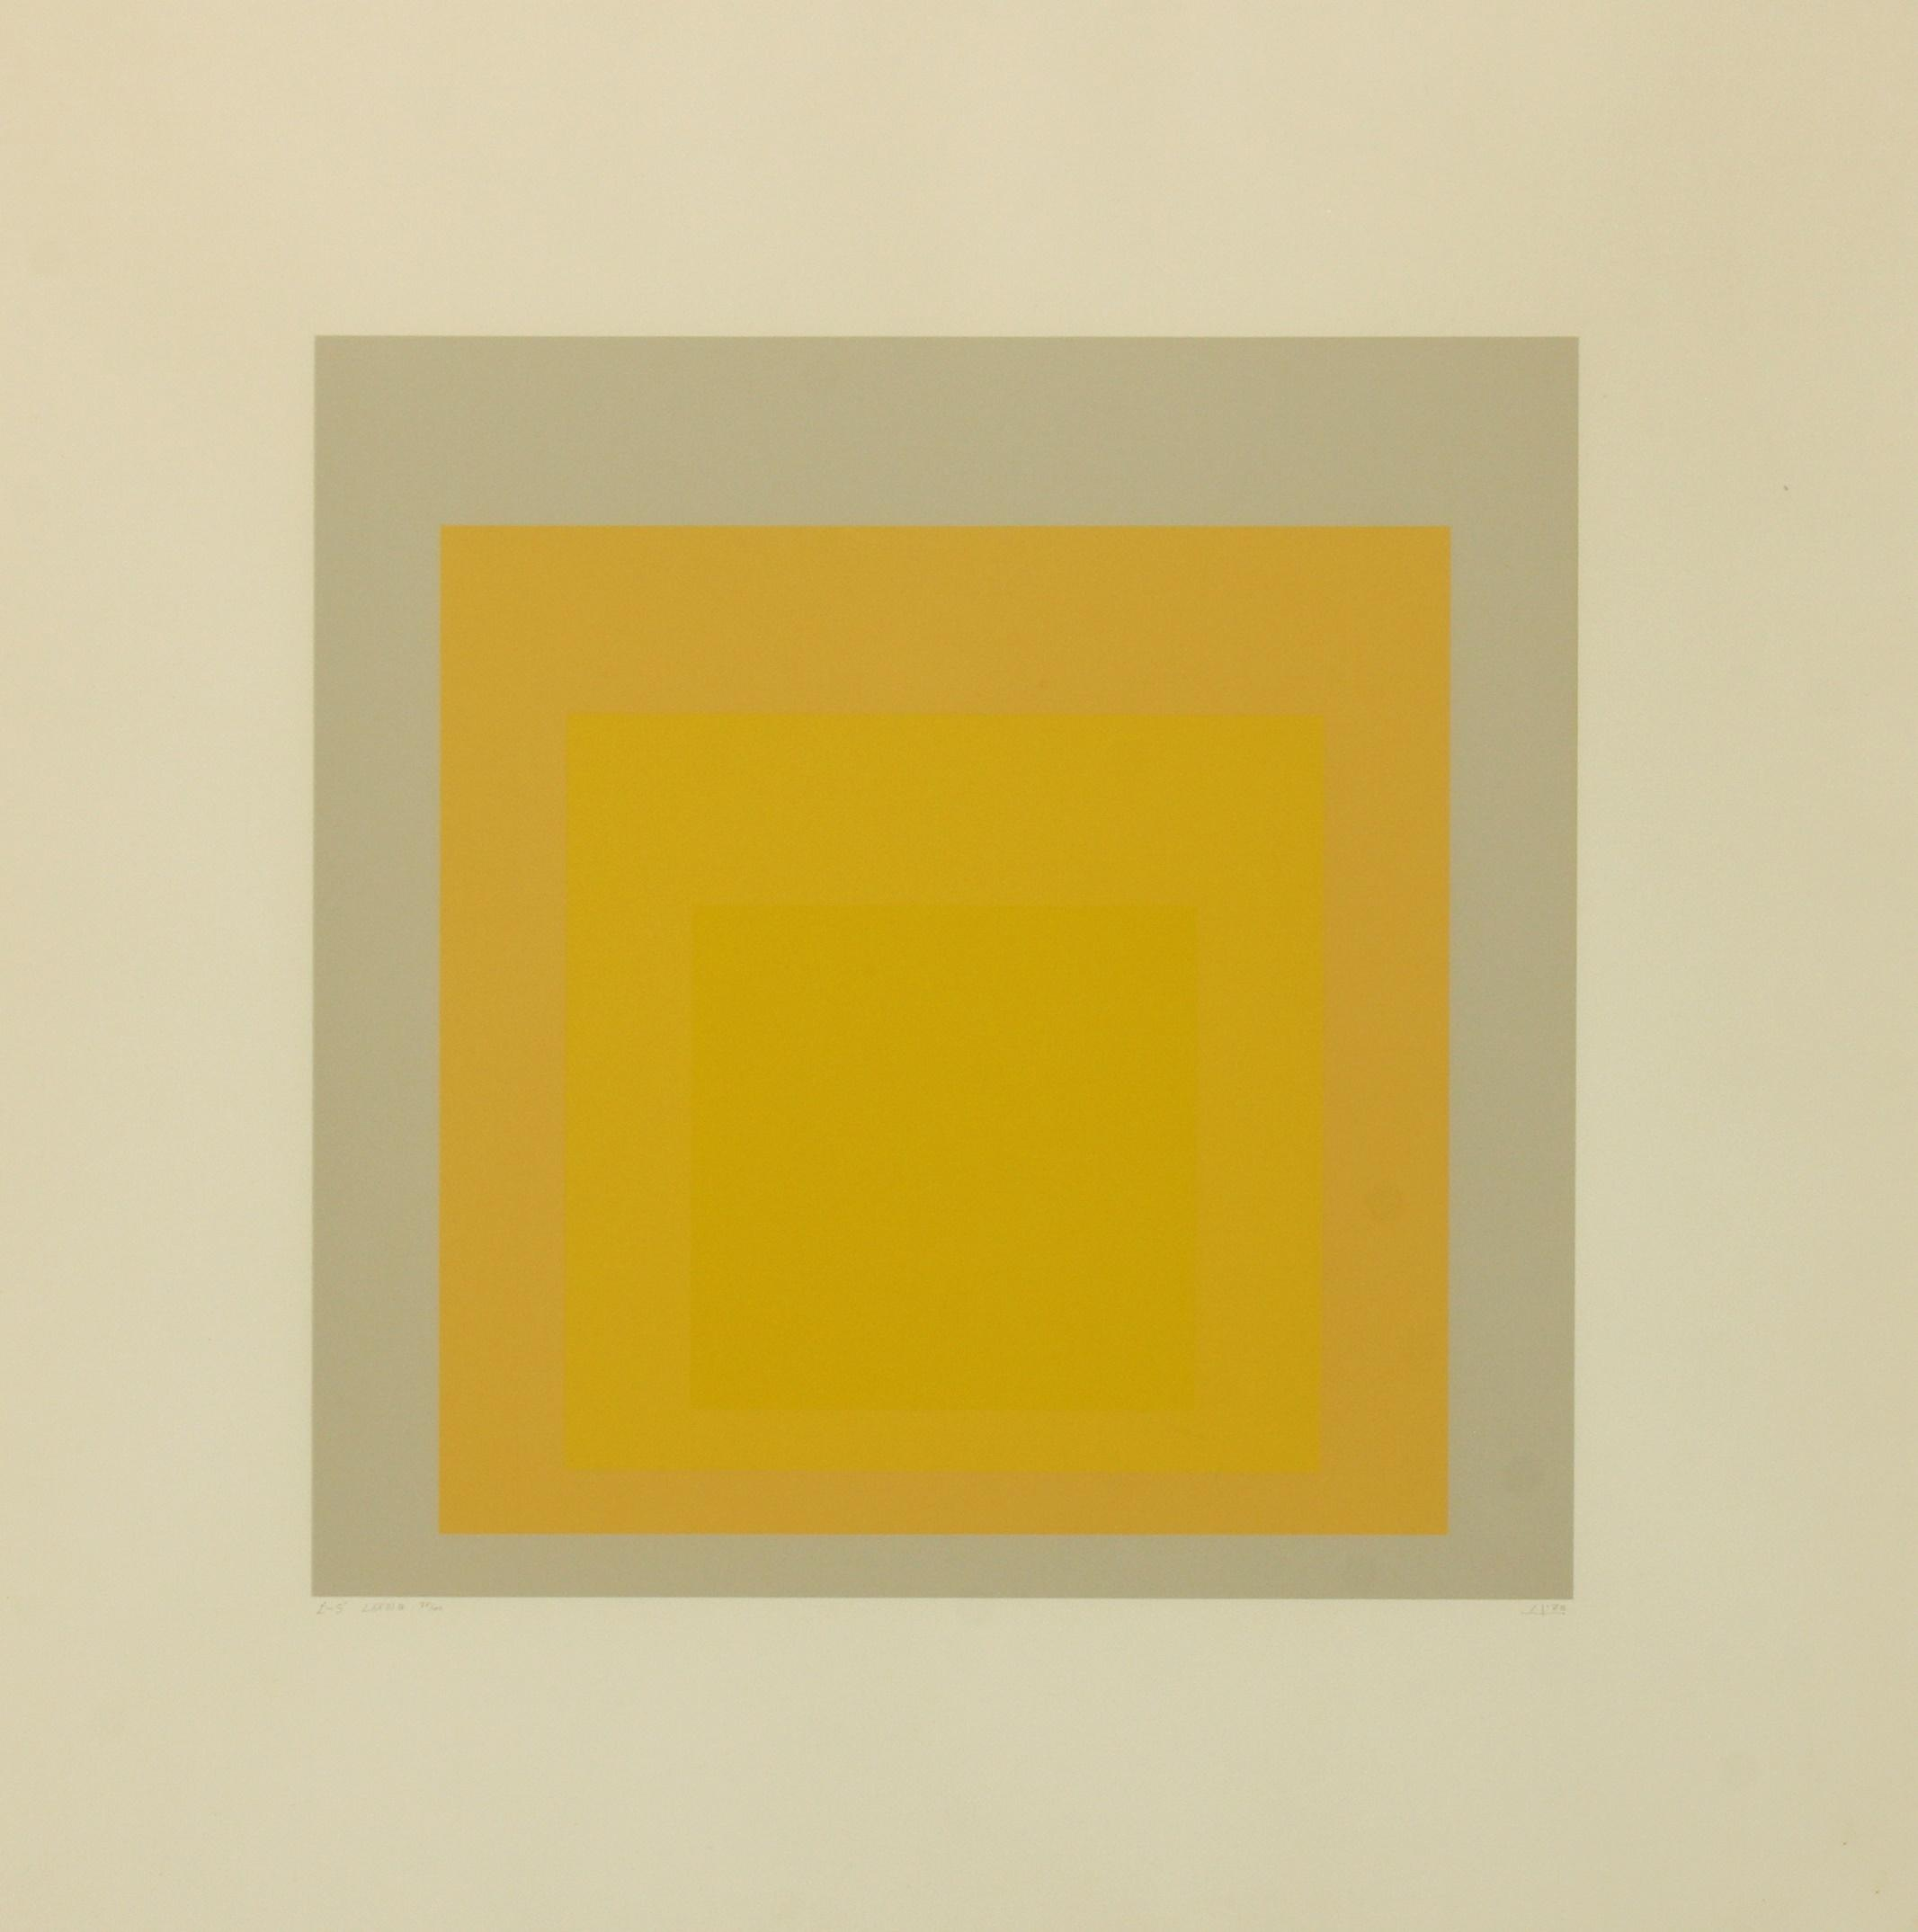 Josef Albers (Germany 1888-1976) I-S LXXIIIa (Homage to the Square), 1972